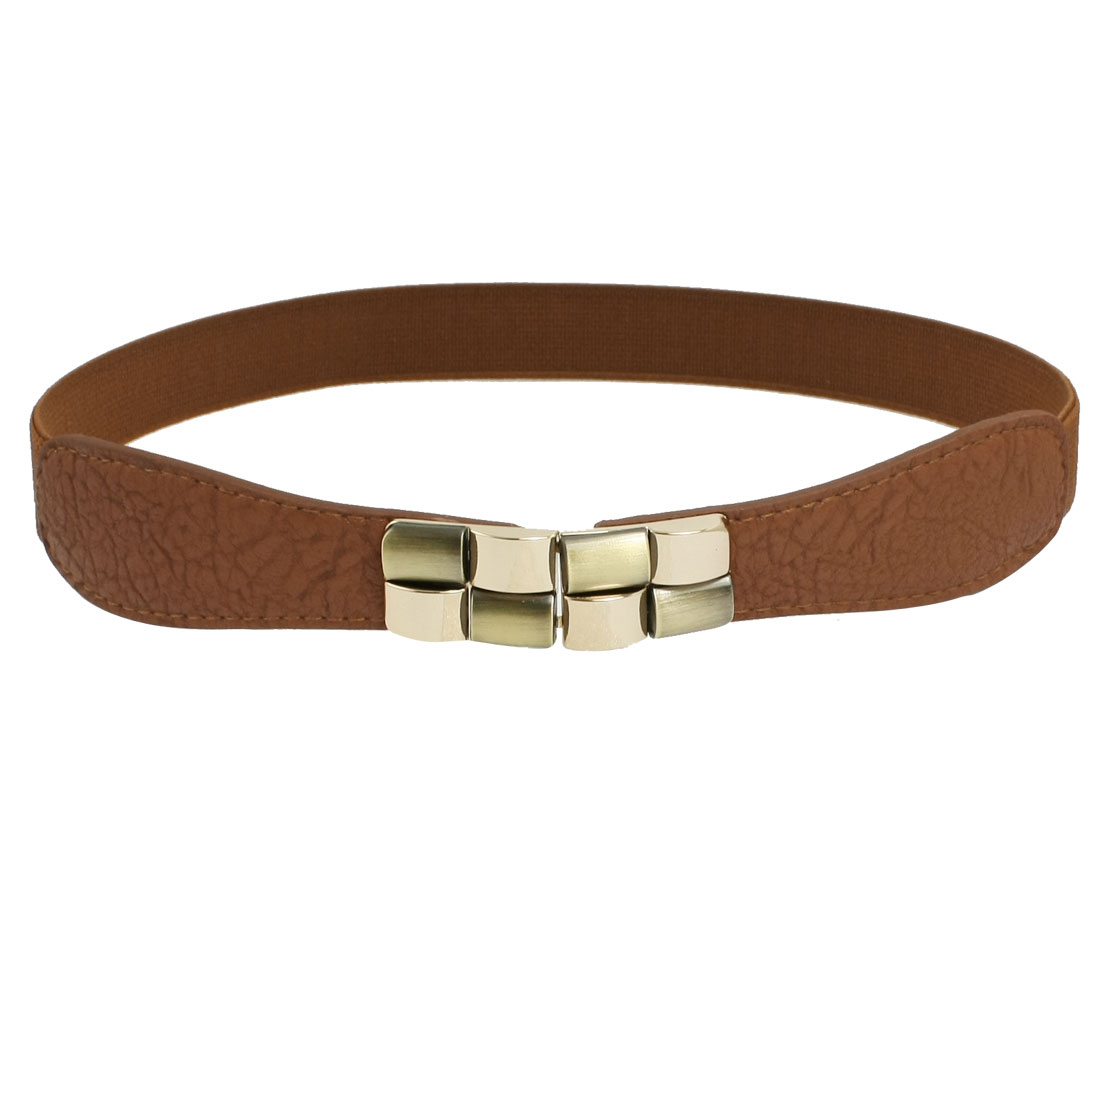 Brown Elastic Cinch Metal Interlocking Buckle Waist Belt for Women